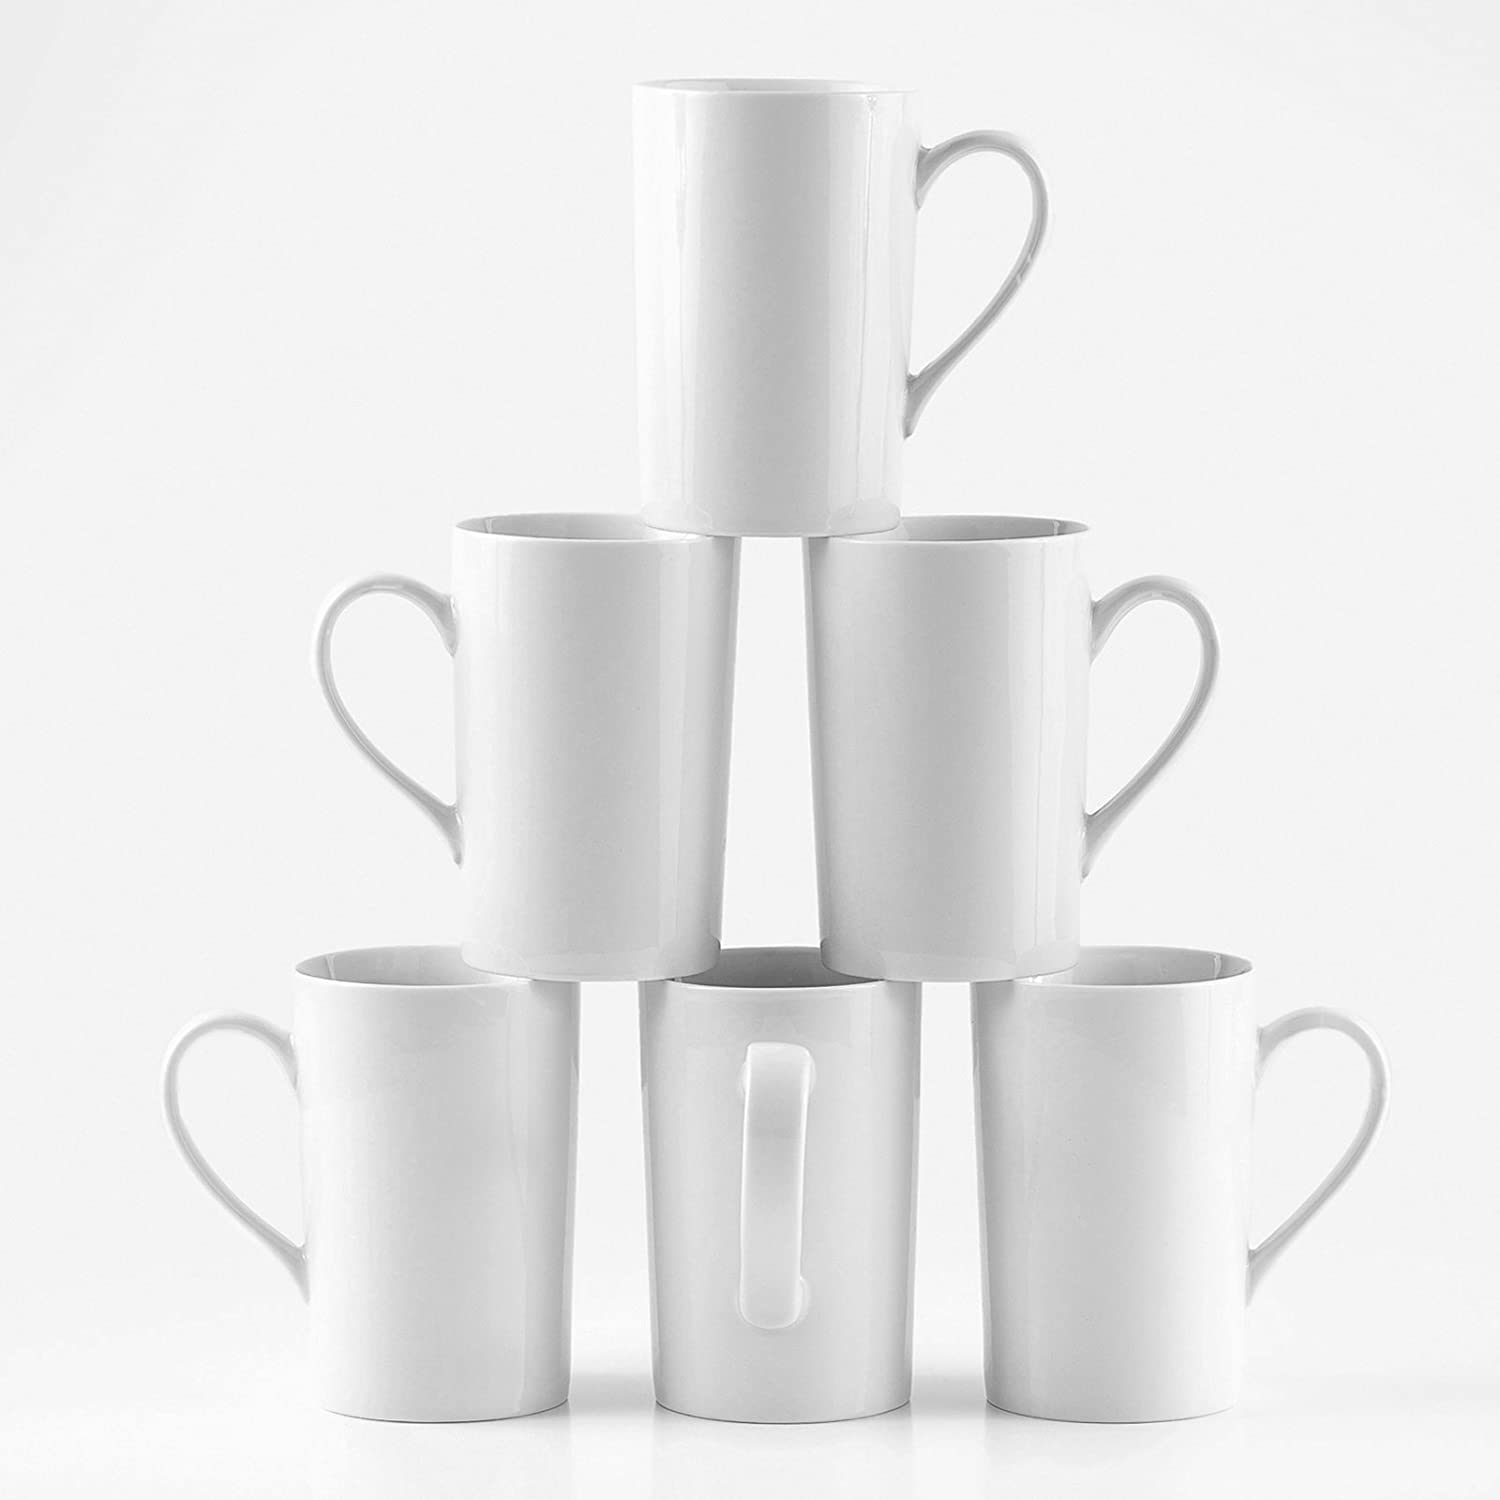 Amuse- Professional Barista Tall Mug for Coffee, Tea or Latte- Set of 6-12 oz.